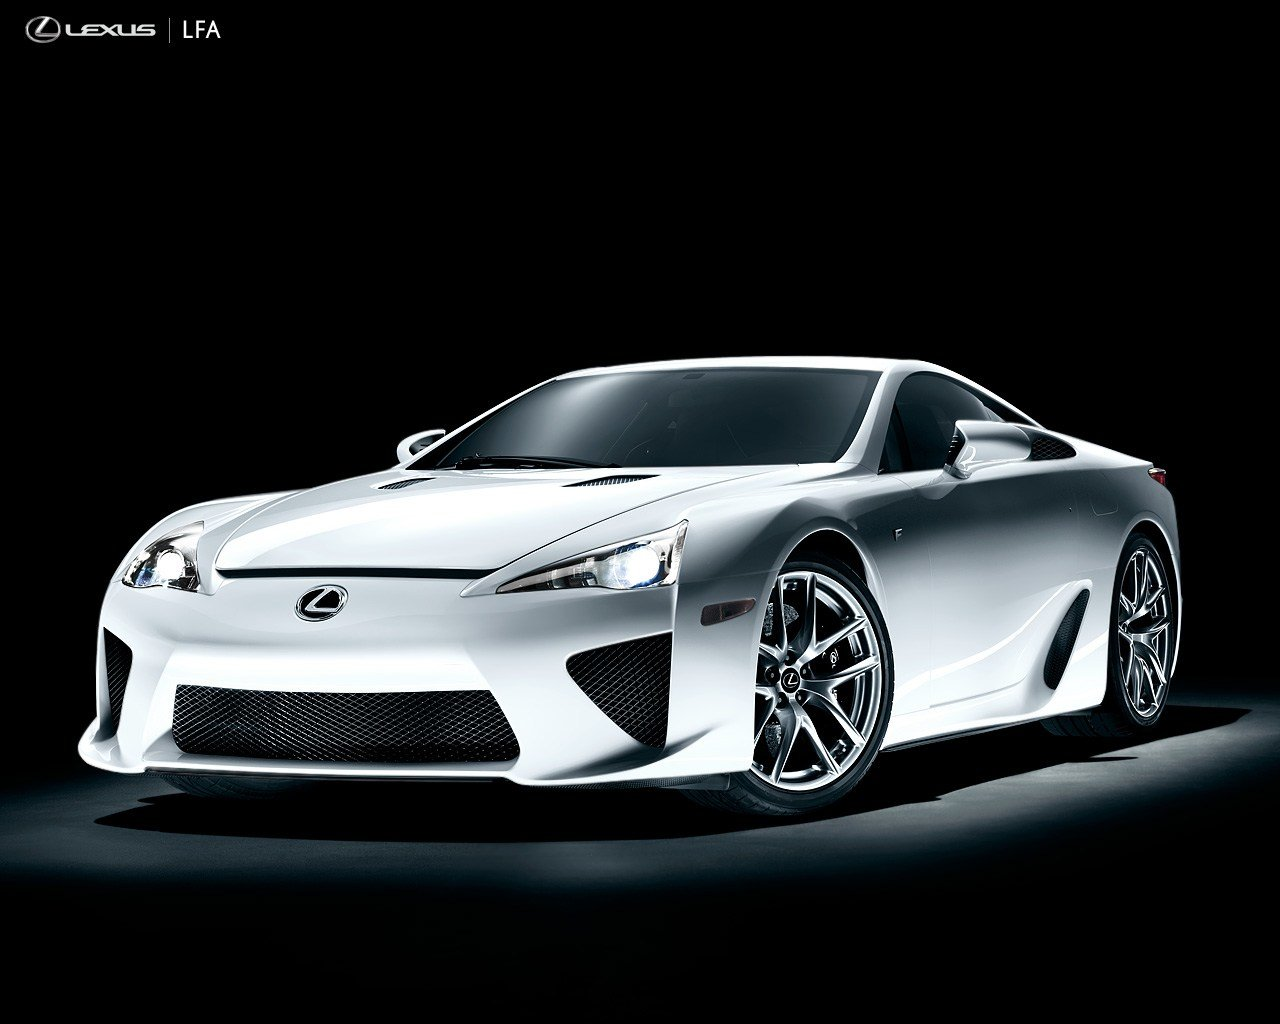 Latest 2012 Lexus Lfa Sports Car Hot Car Pictures Free Download